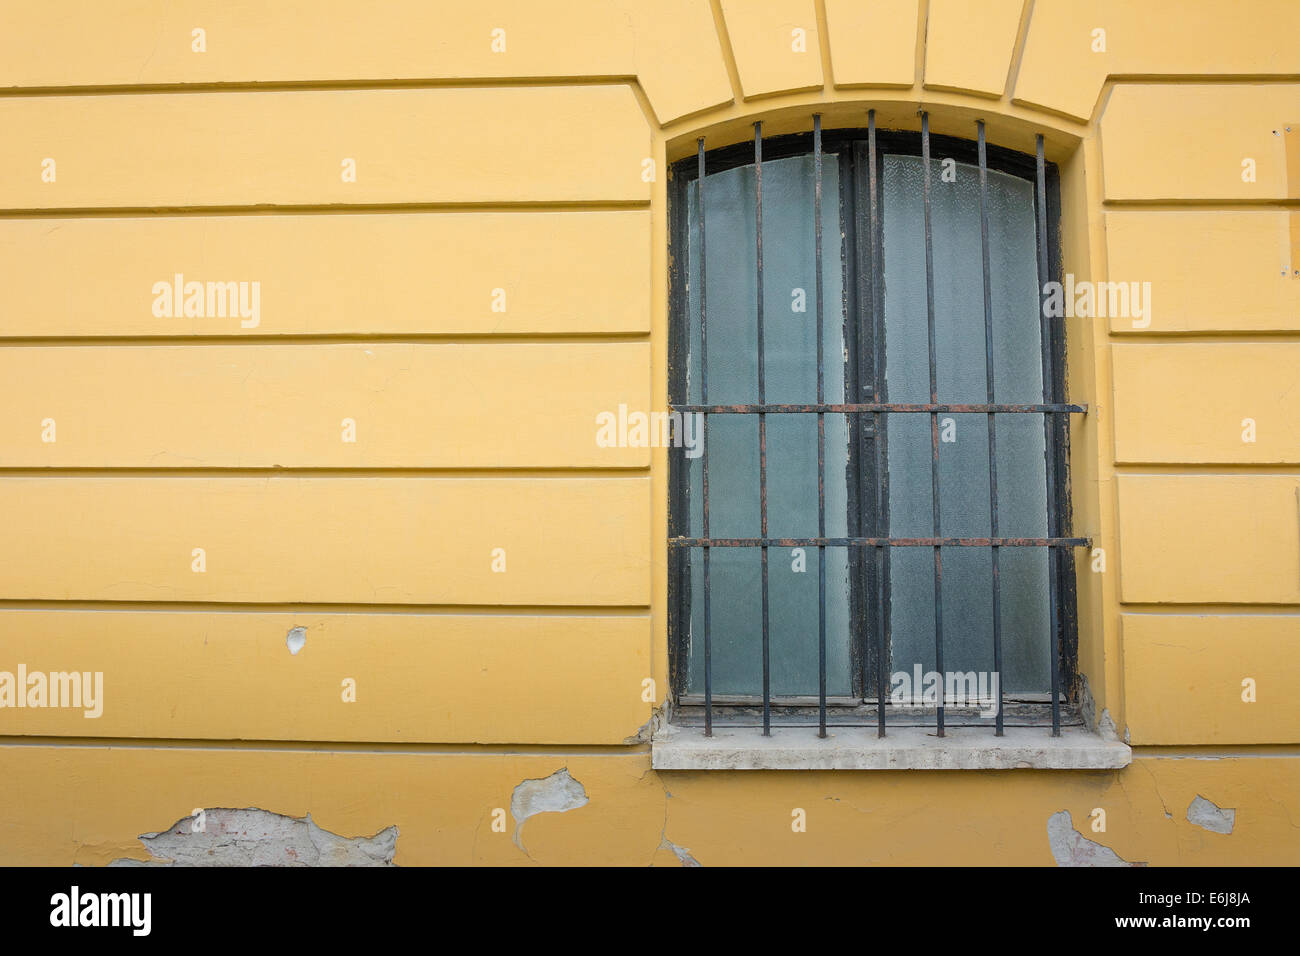 Iron Window Frame Stock Photos & Iron Window Frame Stock Images - Alamy